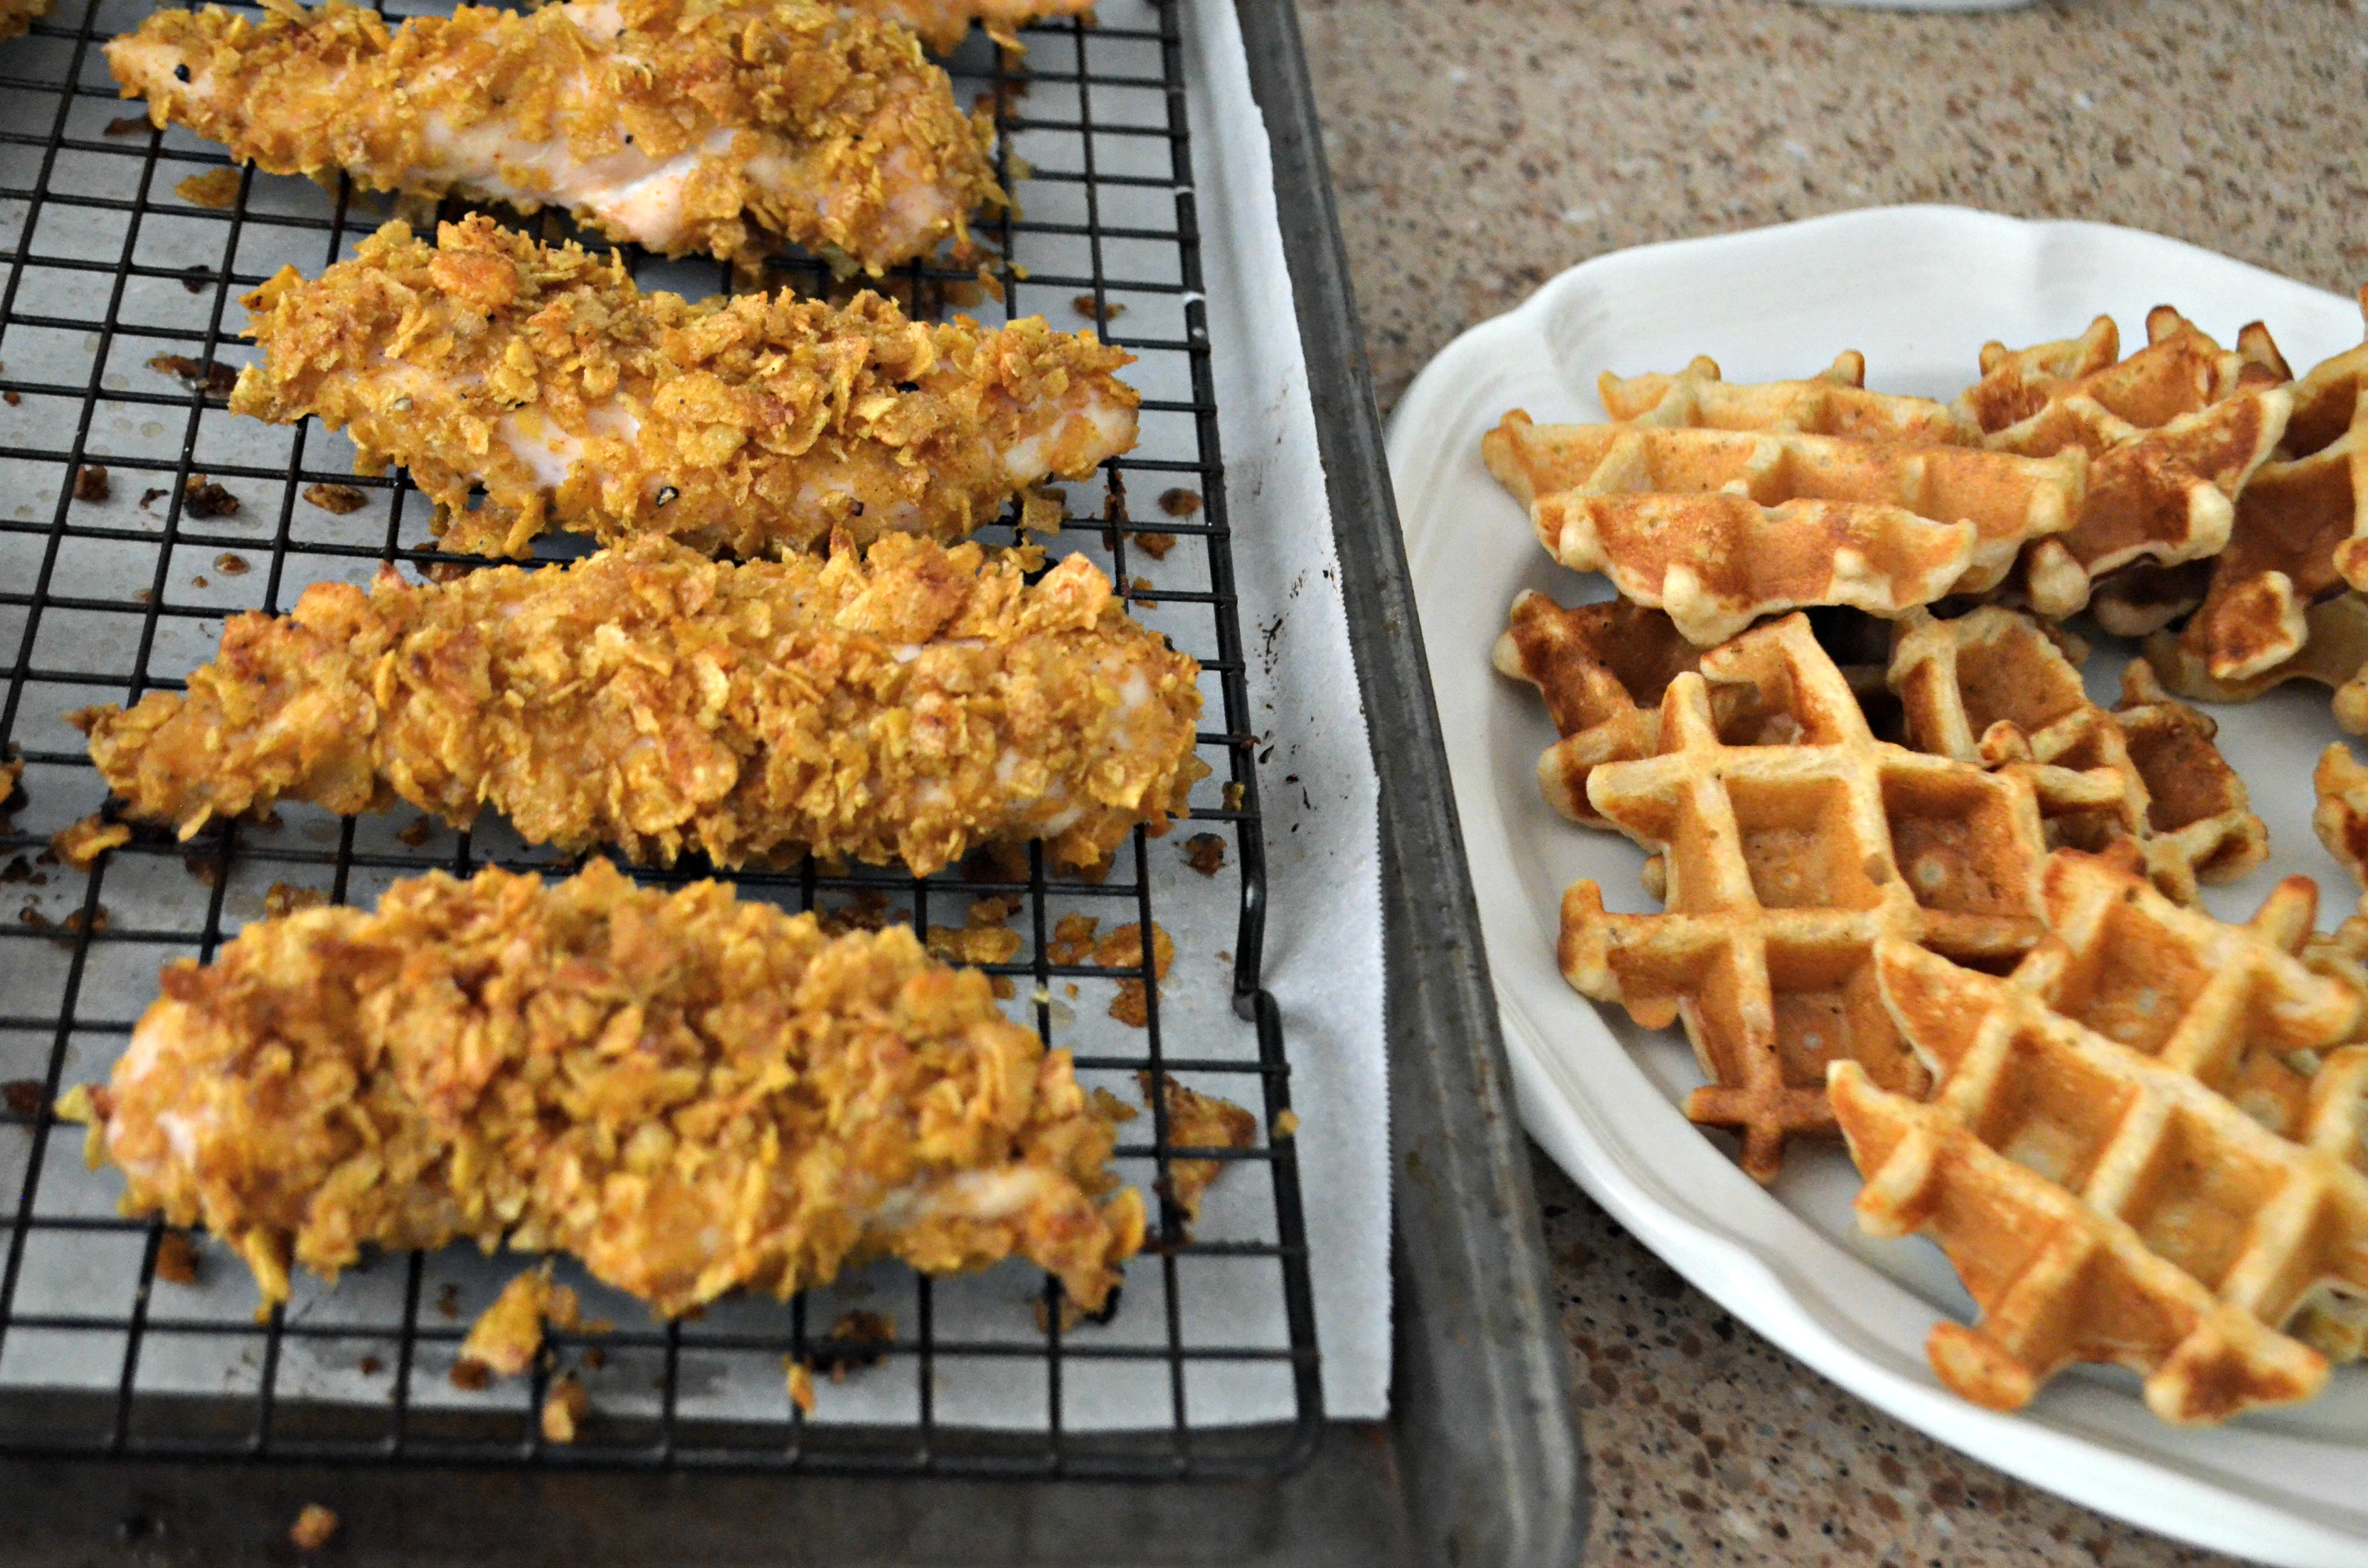 Easy Cornflake Chicken and Mini Waffles - chicken on the baking rack next to the waffles on a plate